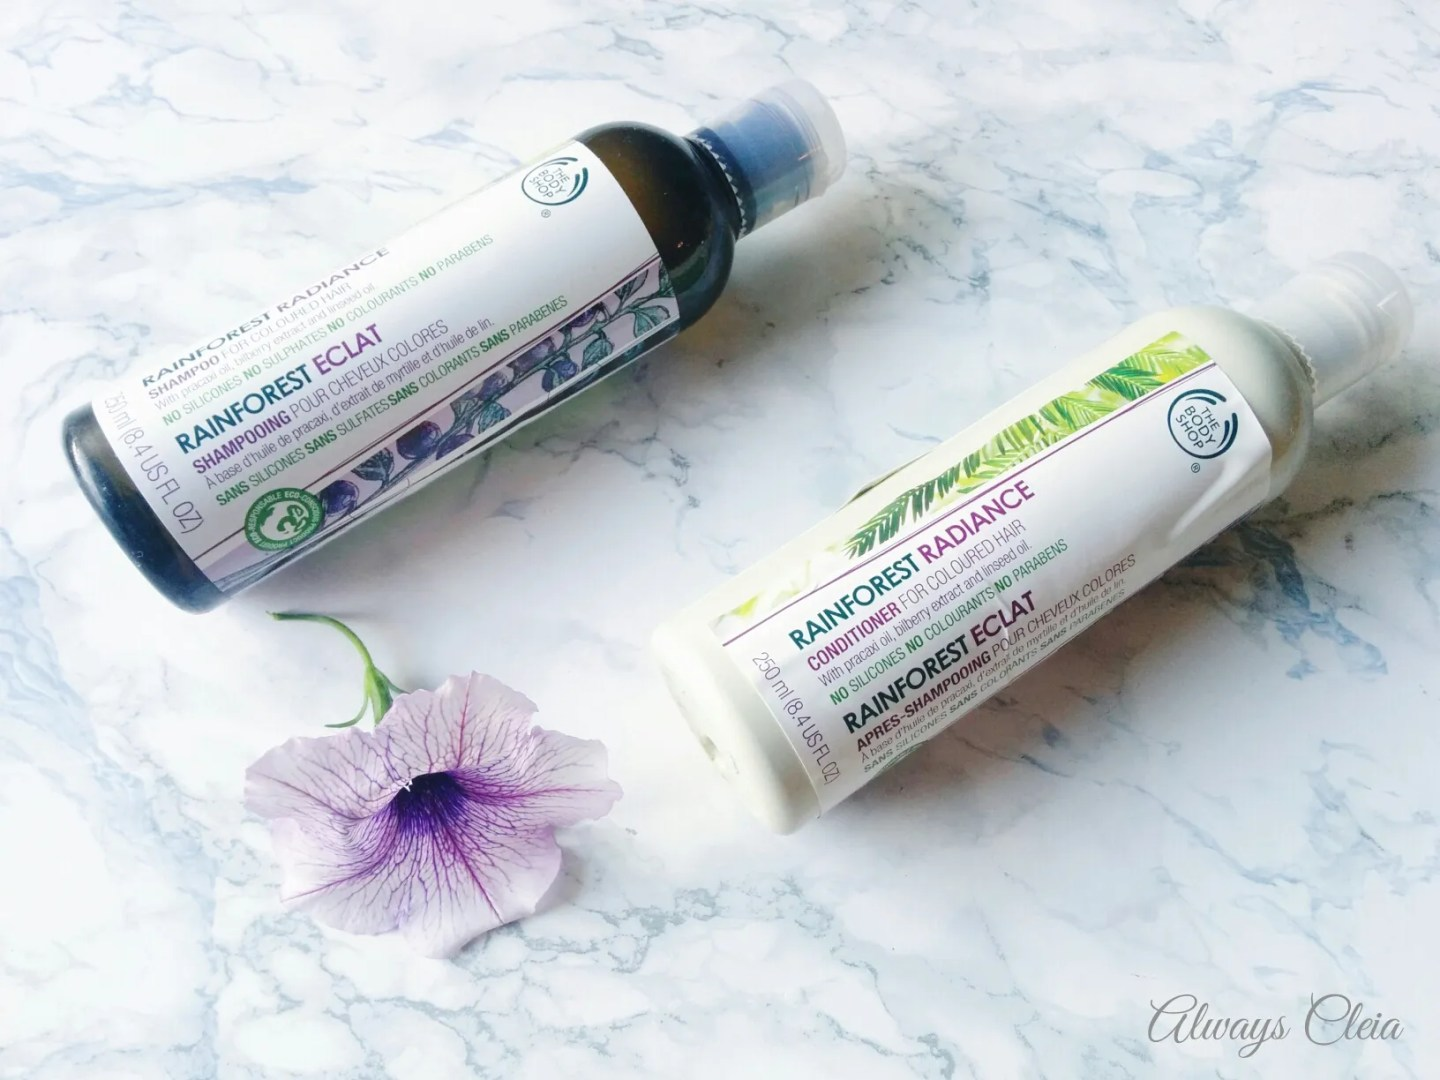 Disappointing Products - The Body Shop Rainforest Haircare